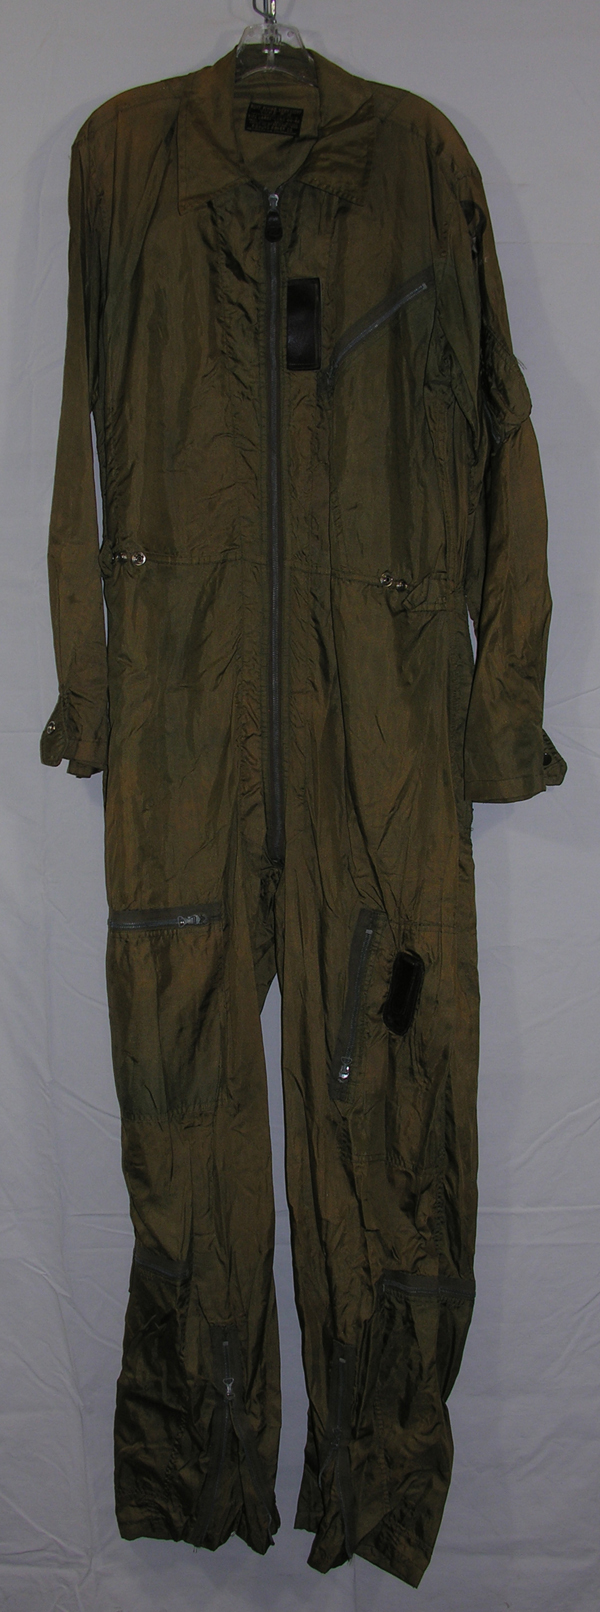 USAF K-2 Flight Suit